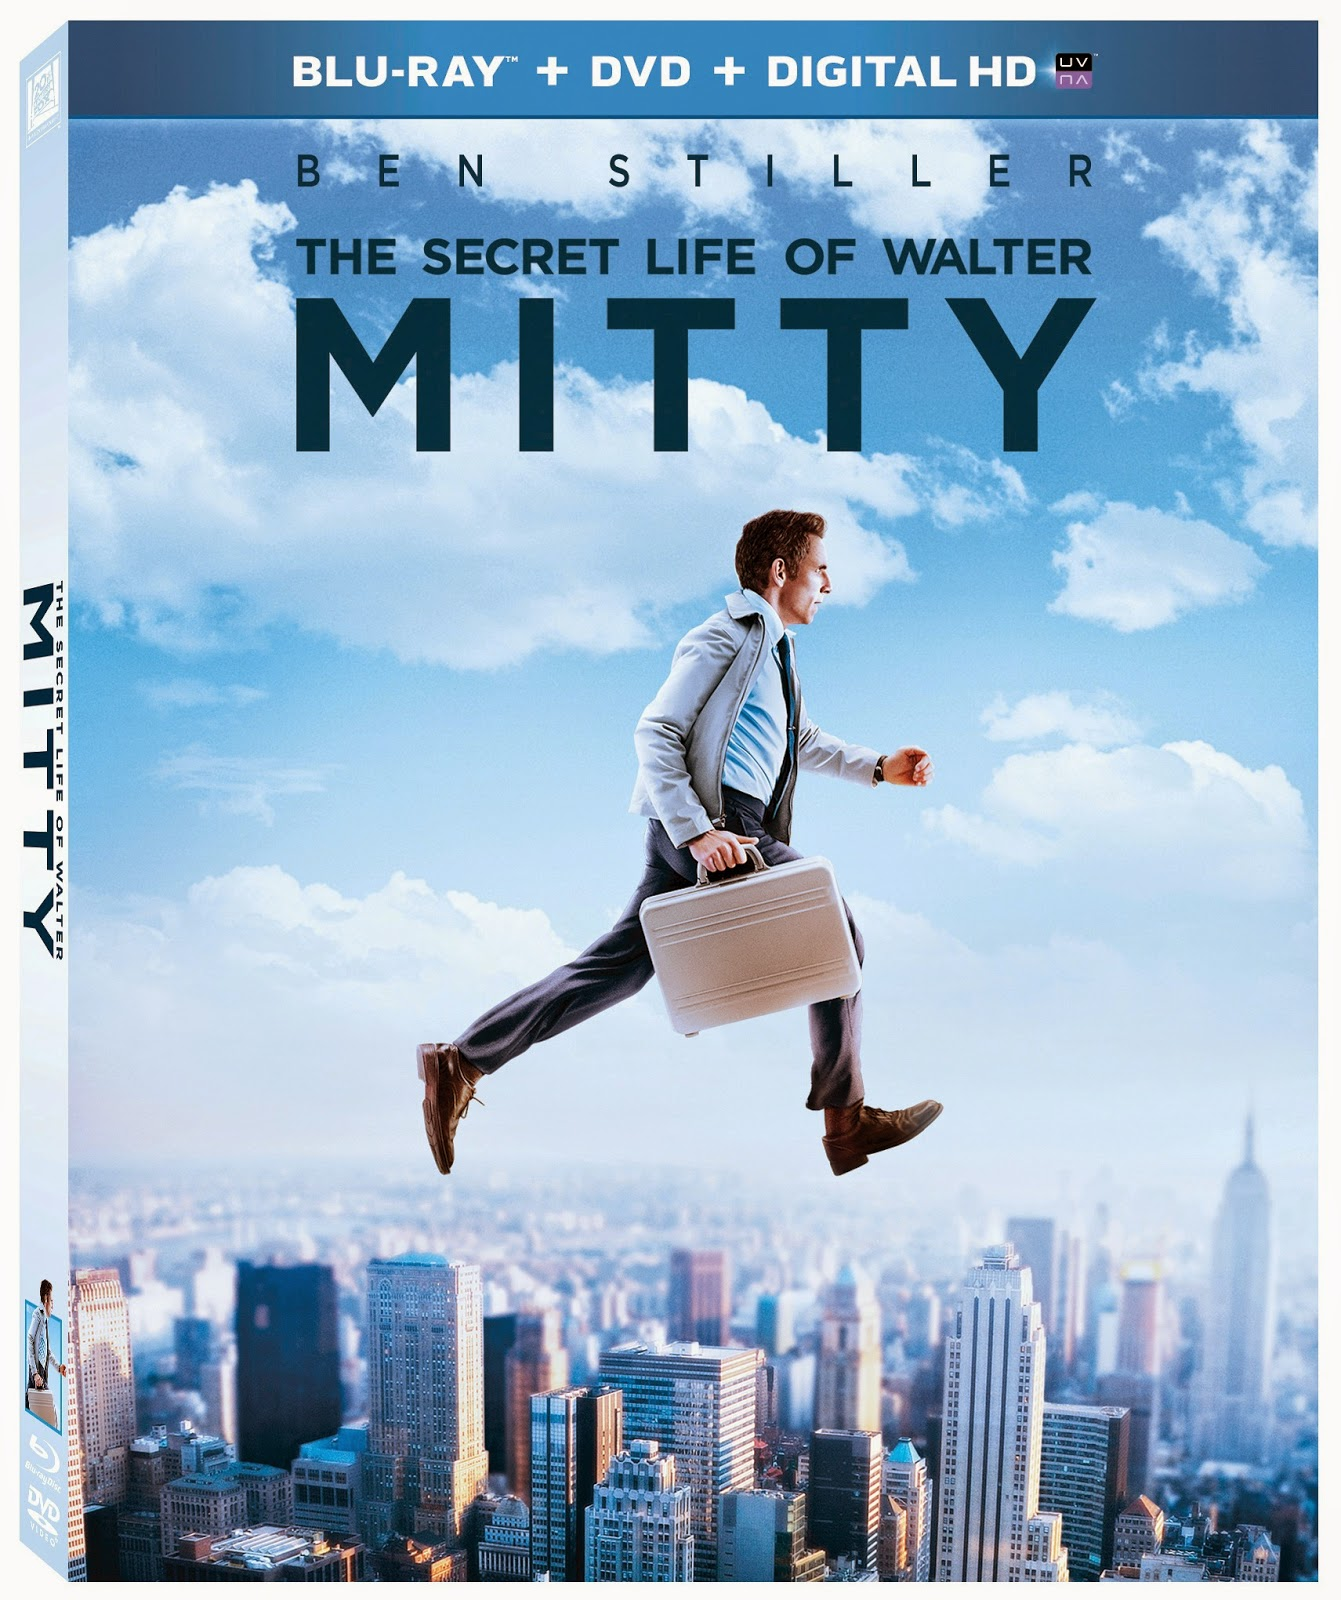 The Secret Life of Walter Mitty (film)